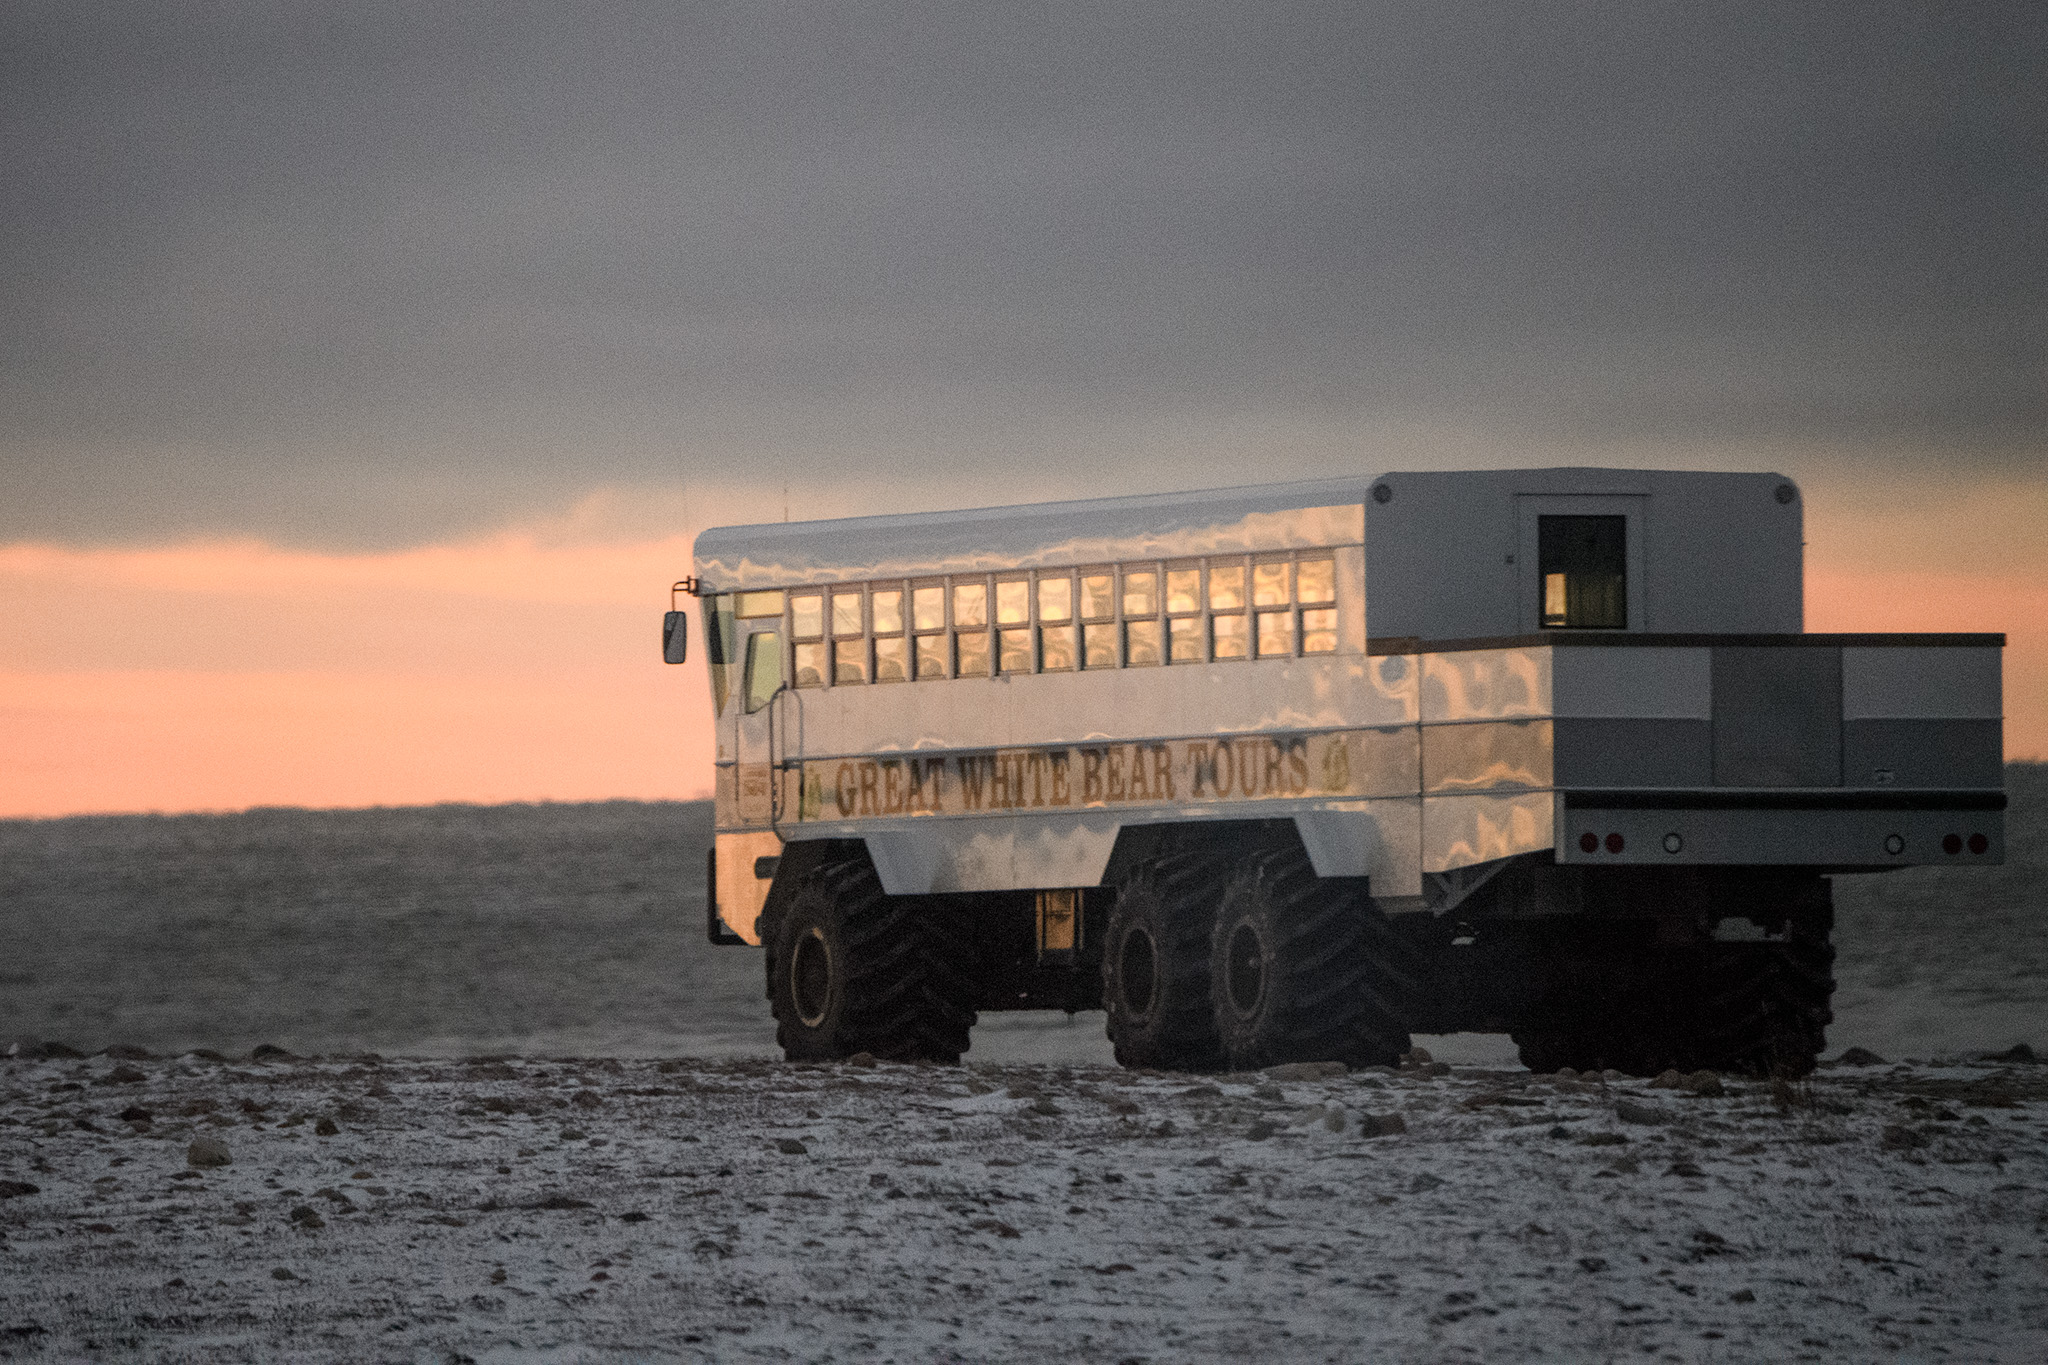 Purpose built polar rovers bring guests out into the National Park to observe bears safely, for both people and bear.